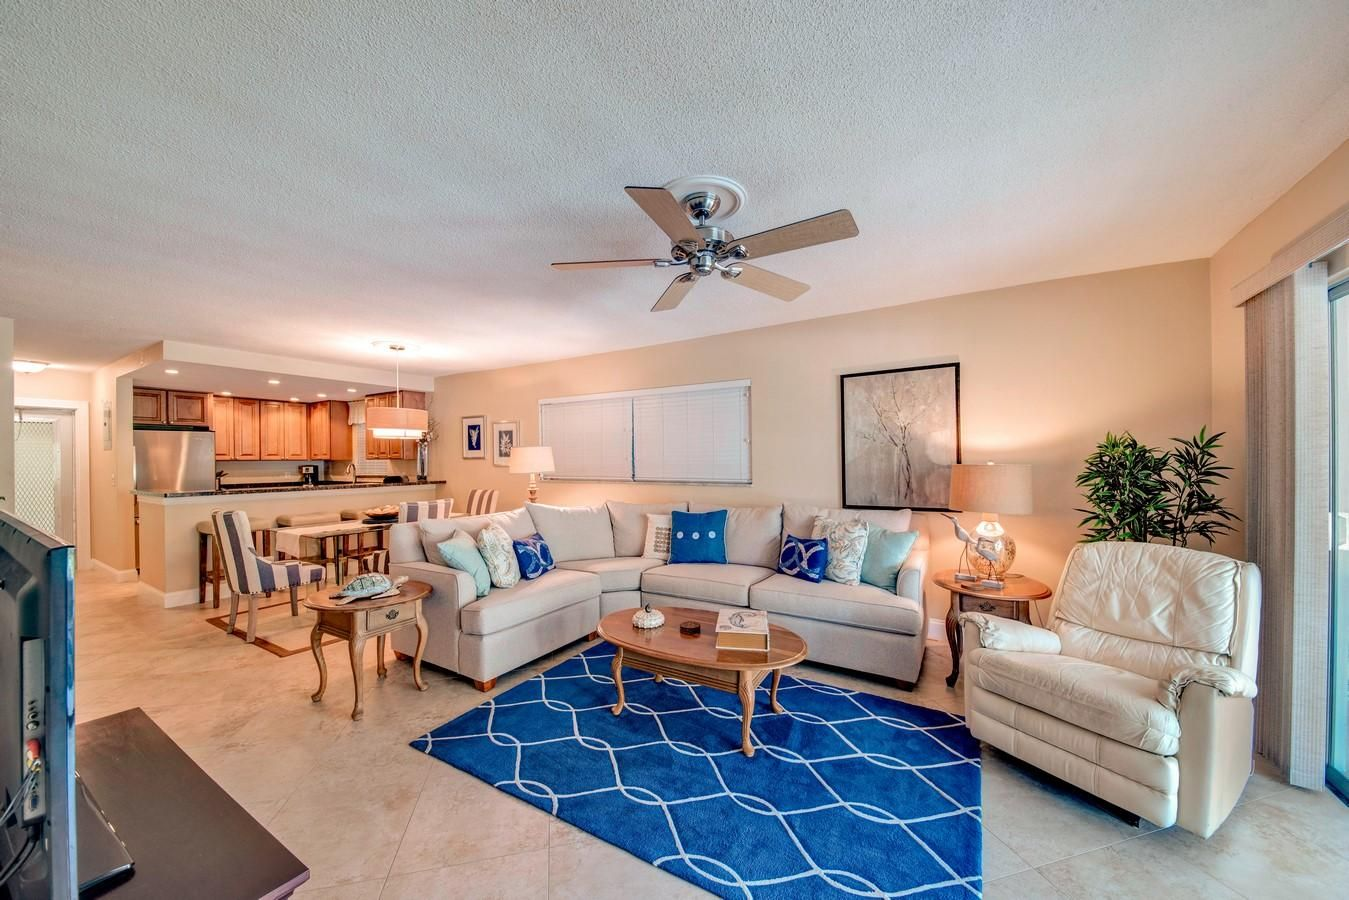 1166 Hillsboro Mile 23 Hillsboro Beach Fl 33062 Hillsboro Beach Condos For Sale Beach Condo